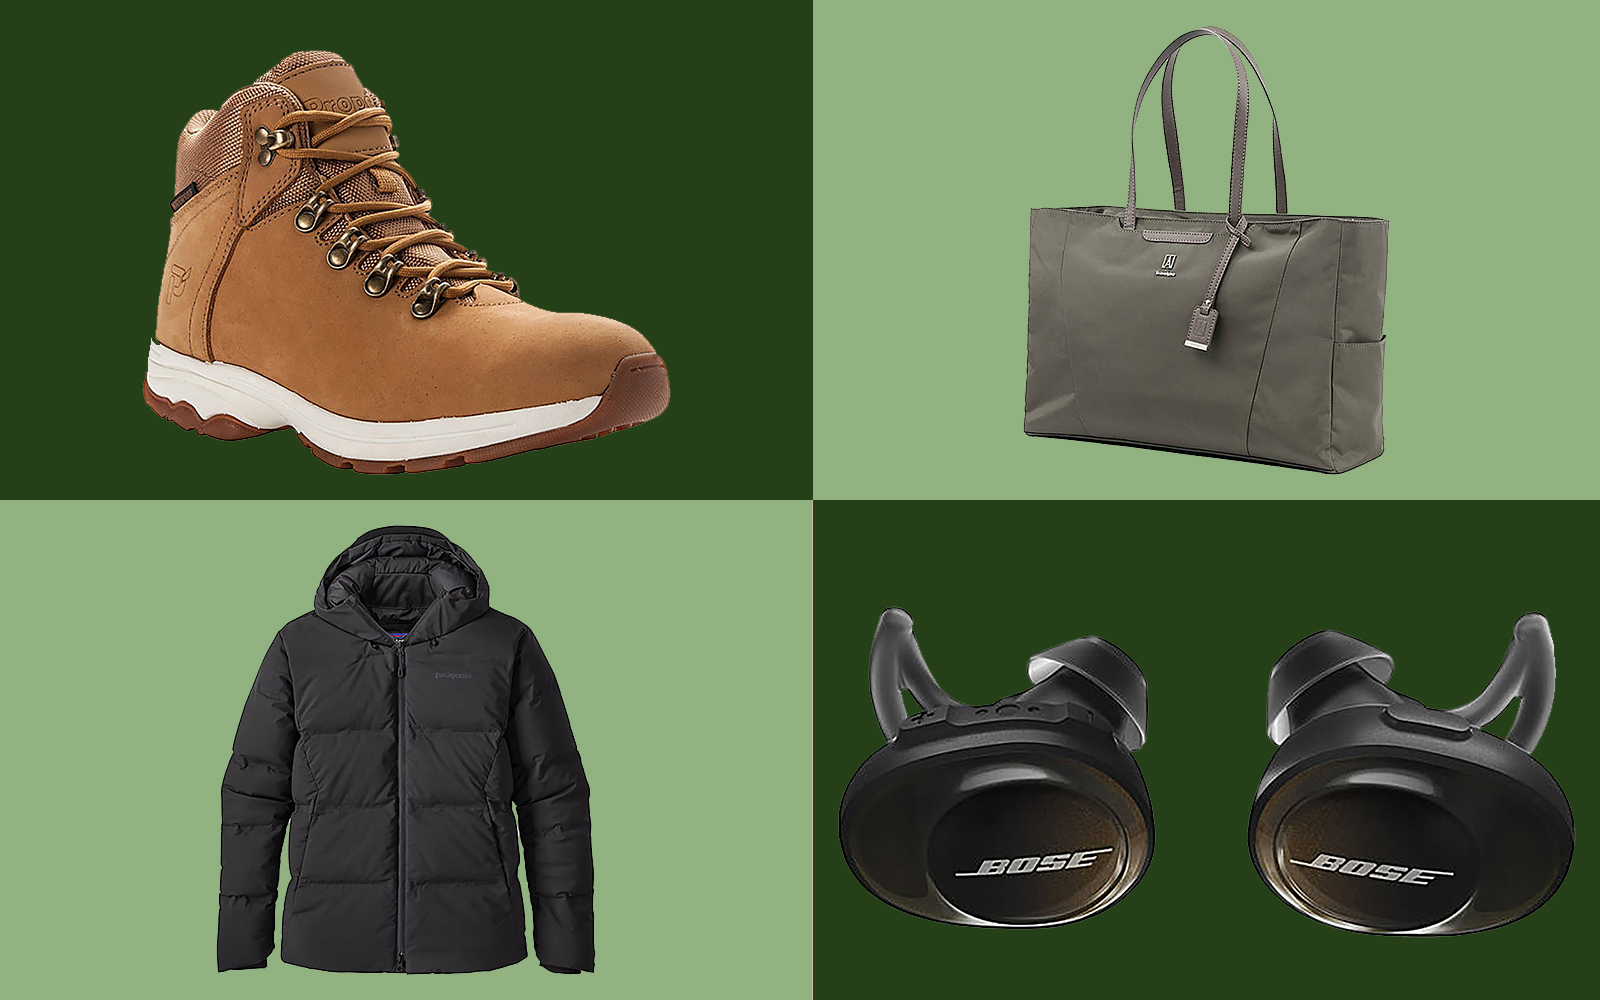 ugg black friday deals 2020